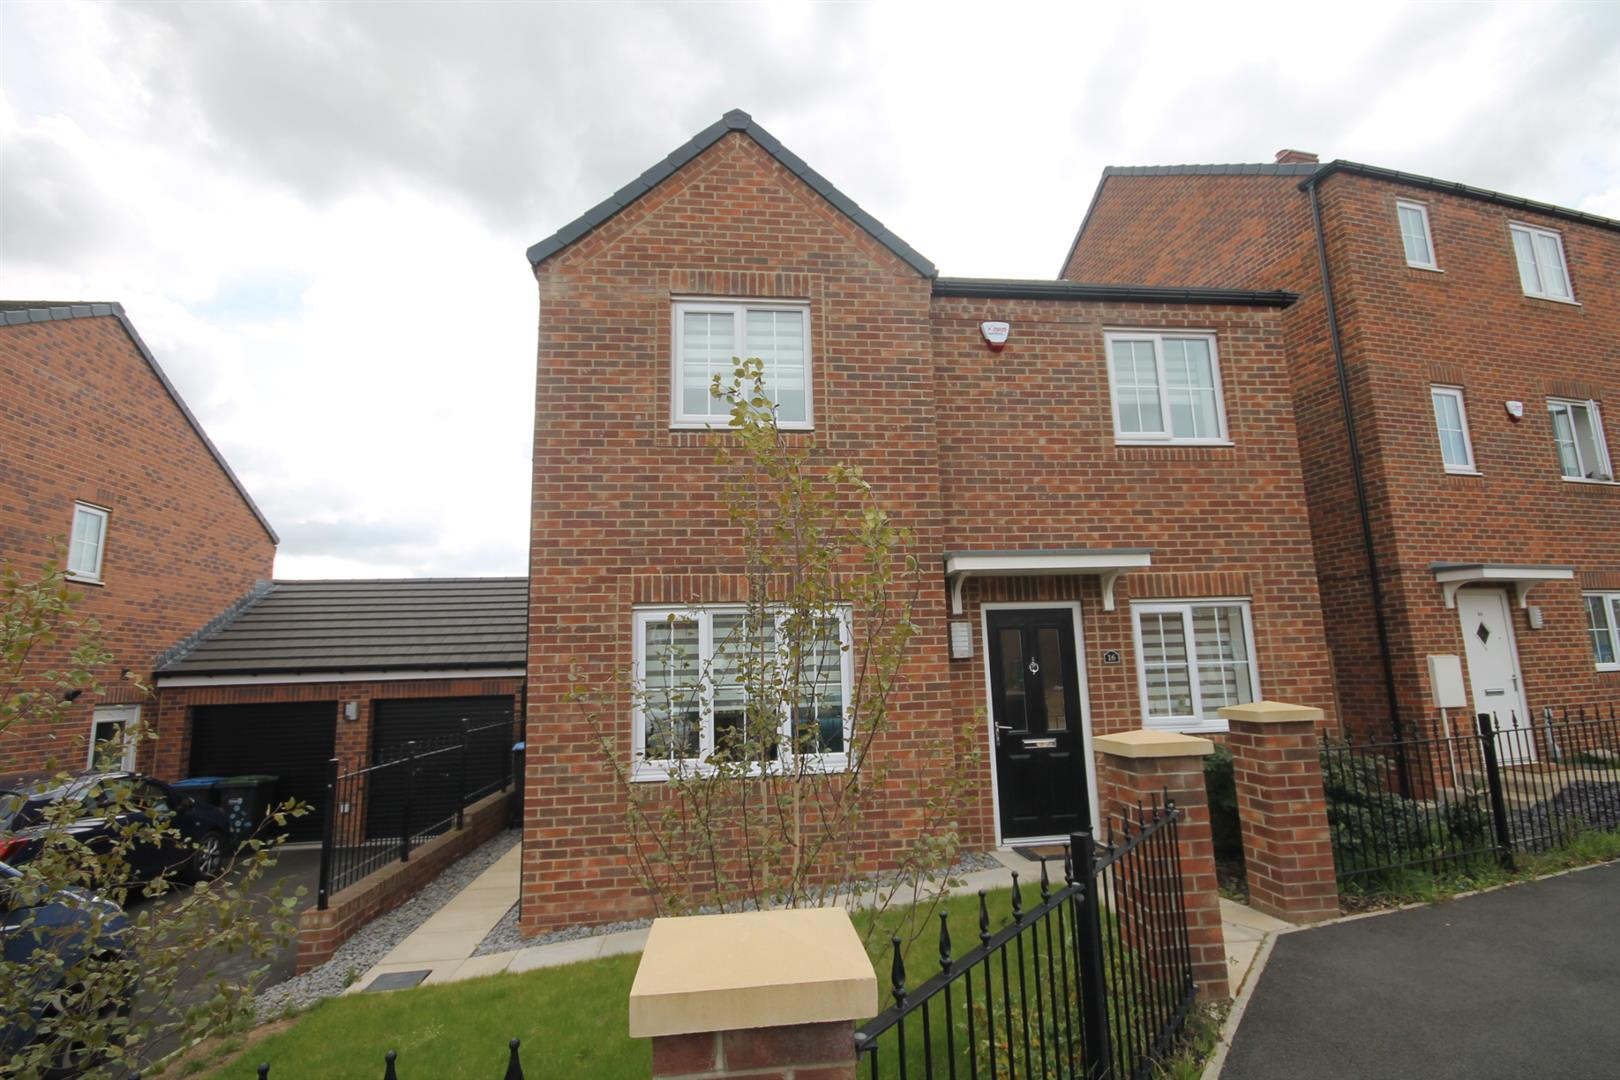 4 Bedrooms Detached House for sale in Sterling Way, Shildon